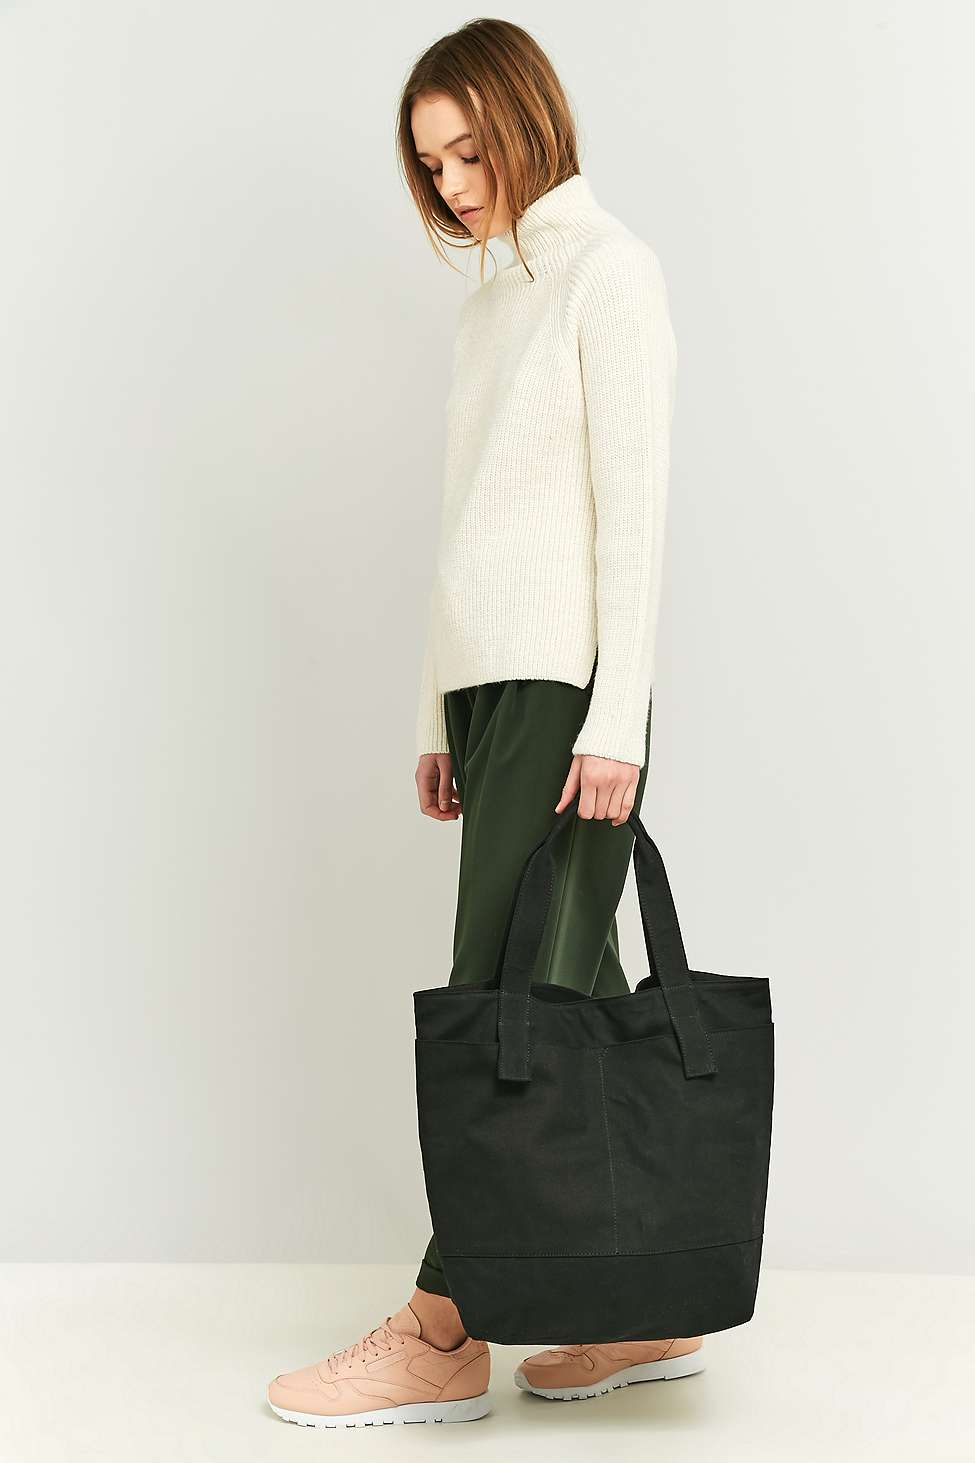 Oversized Black Canvas Tote Bag | Urban Outfitters